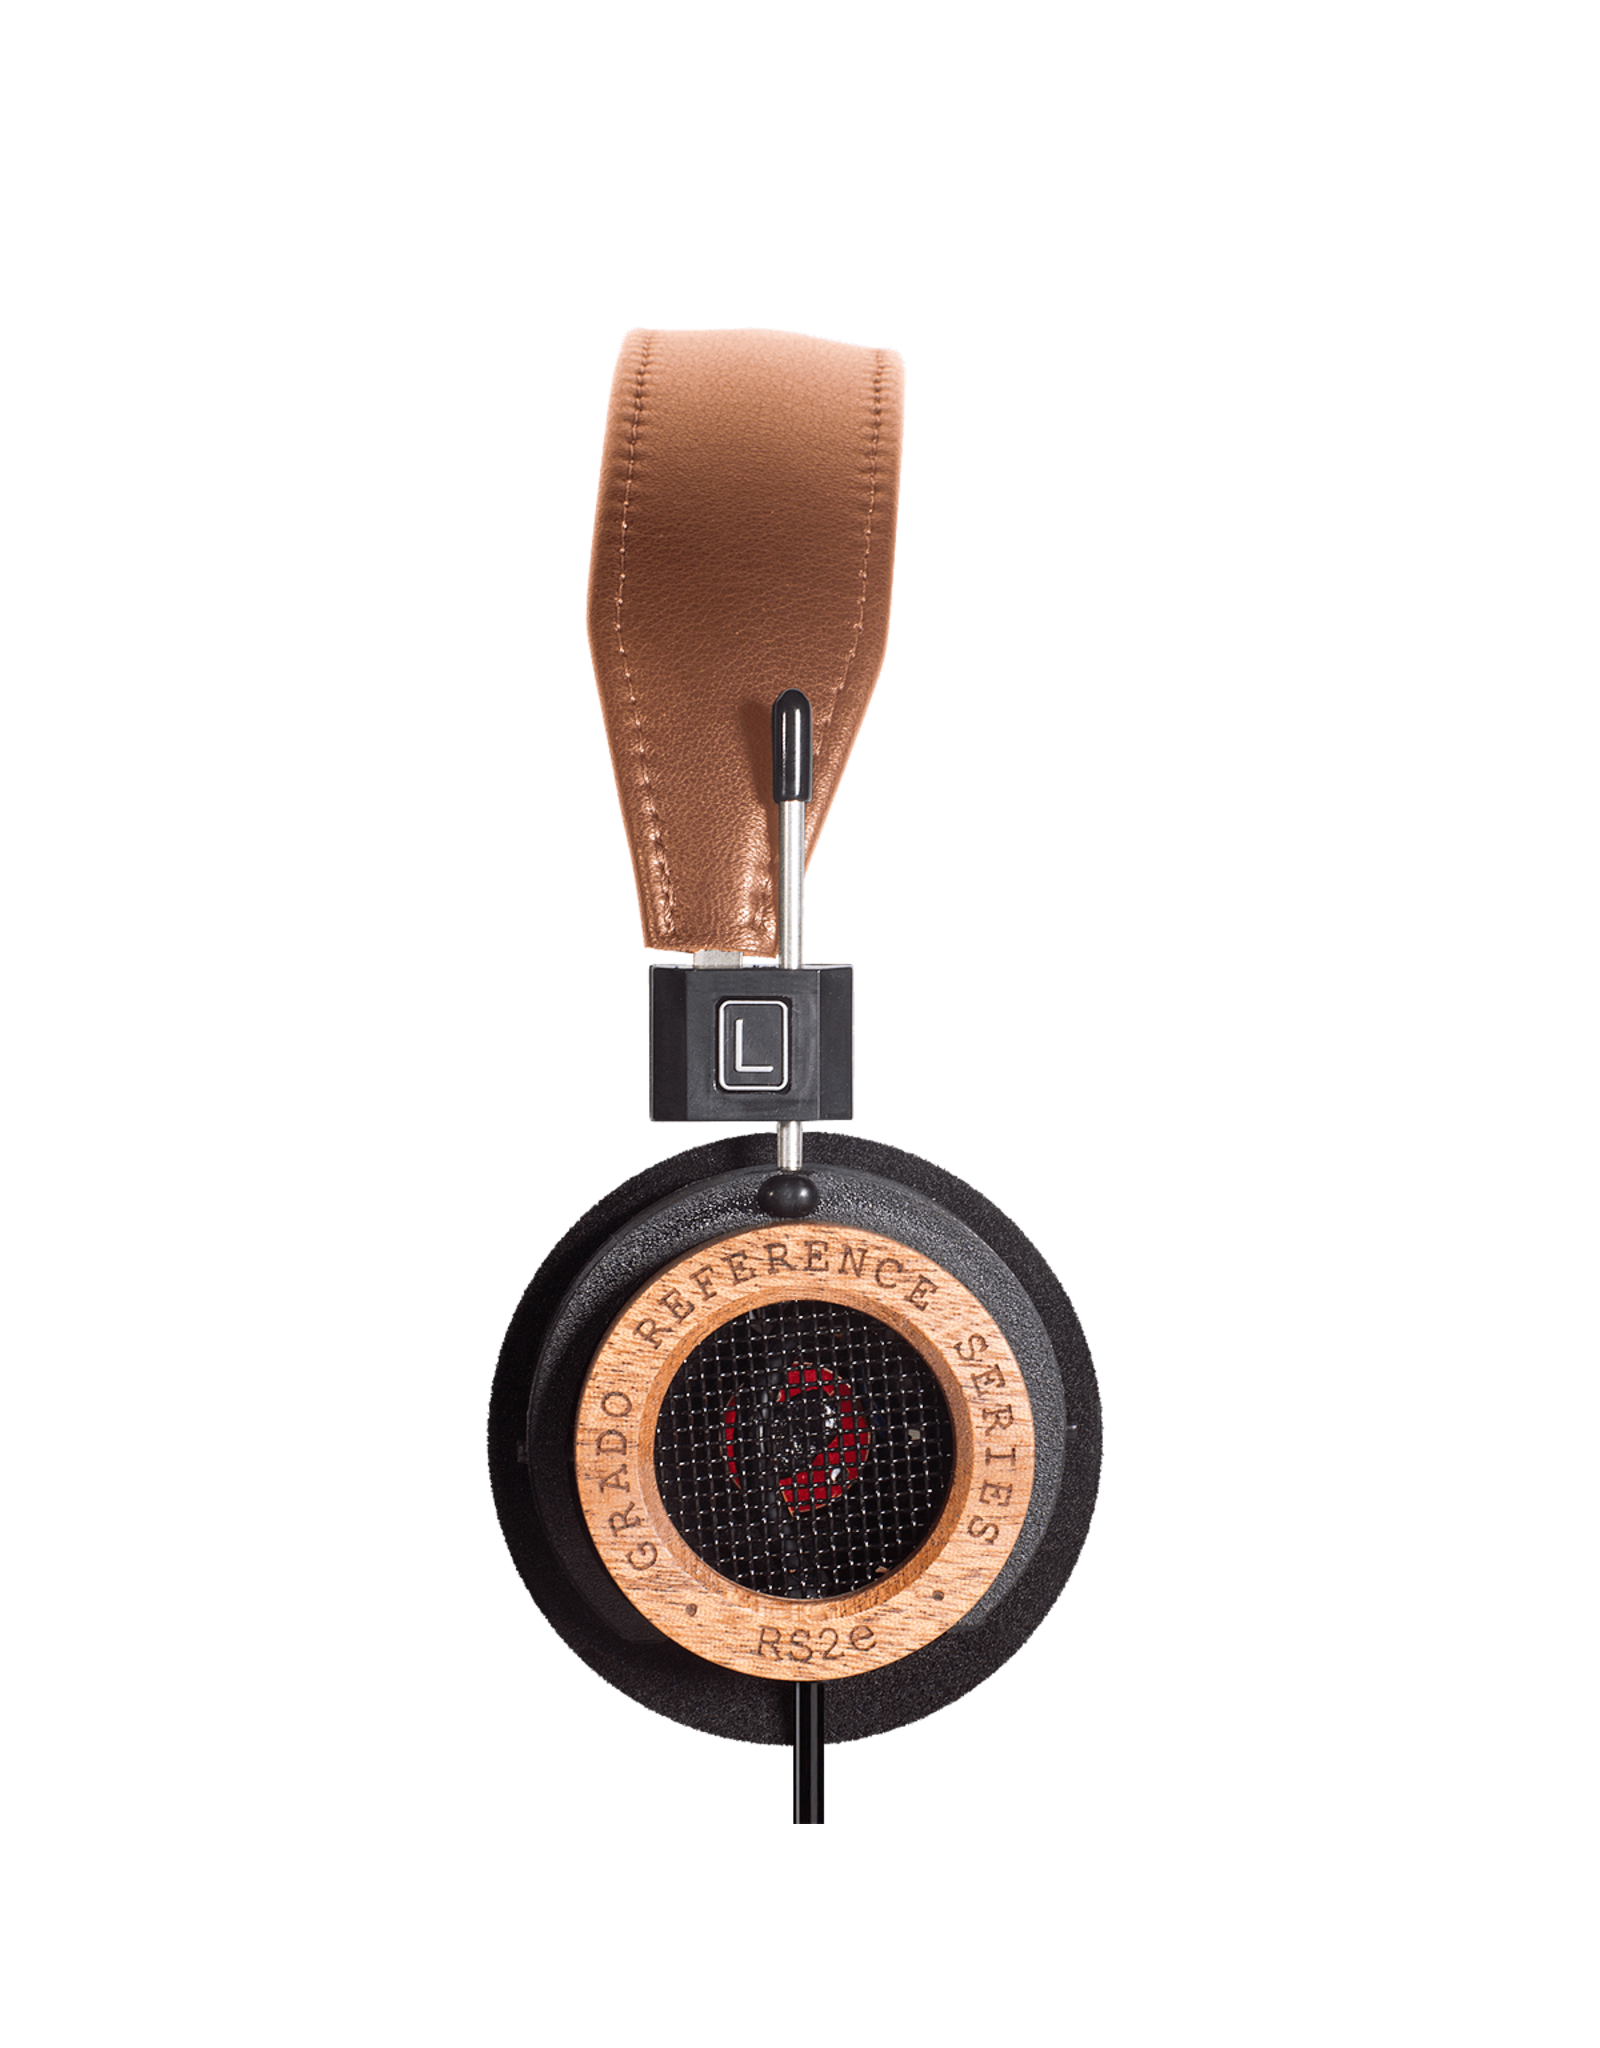 Grado Labs Grado Reference RS2e Headphones